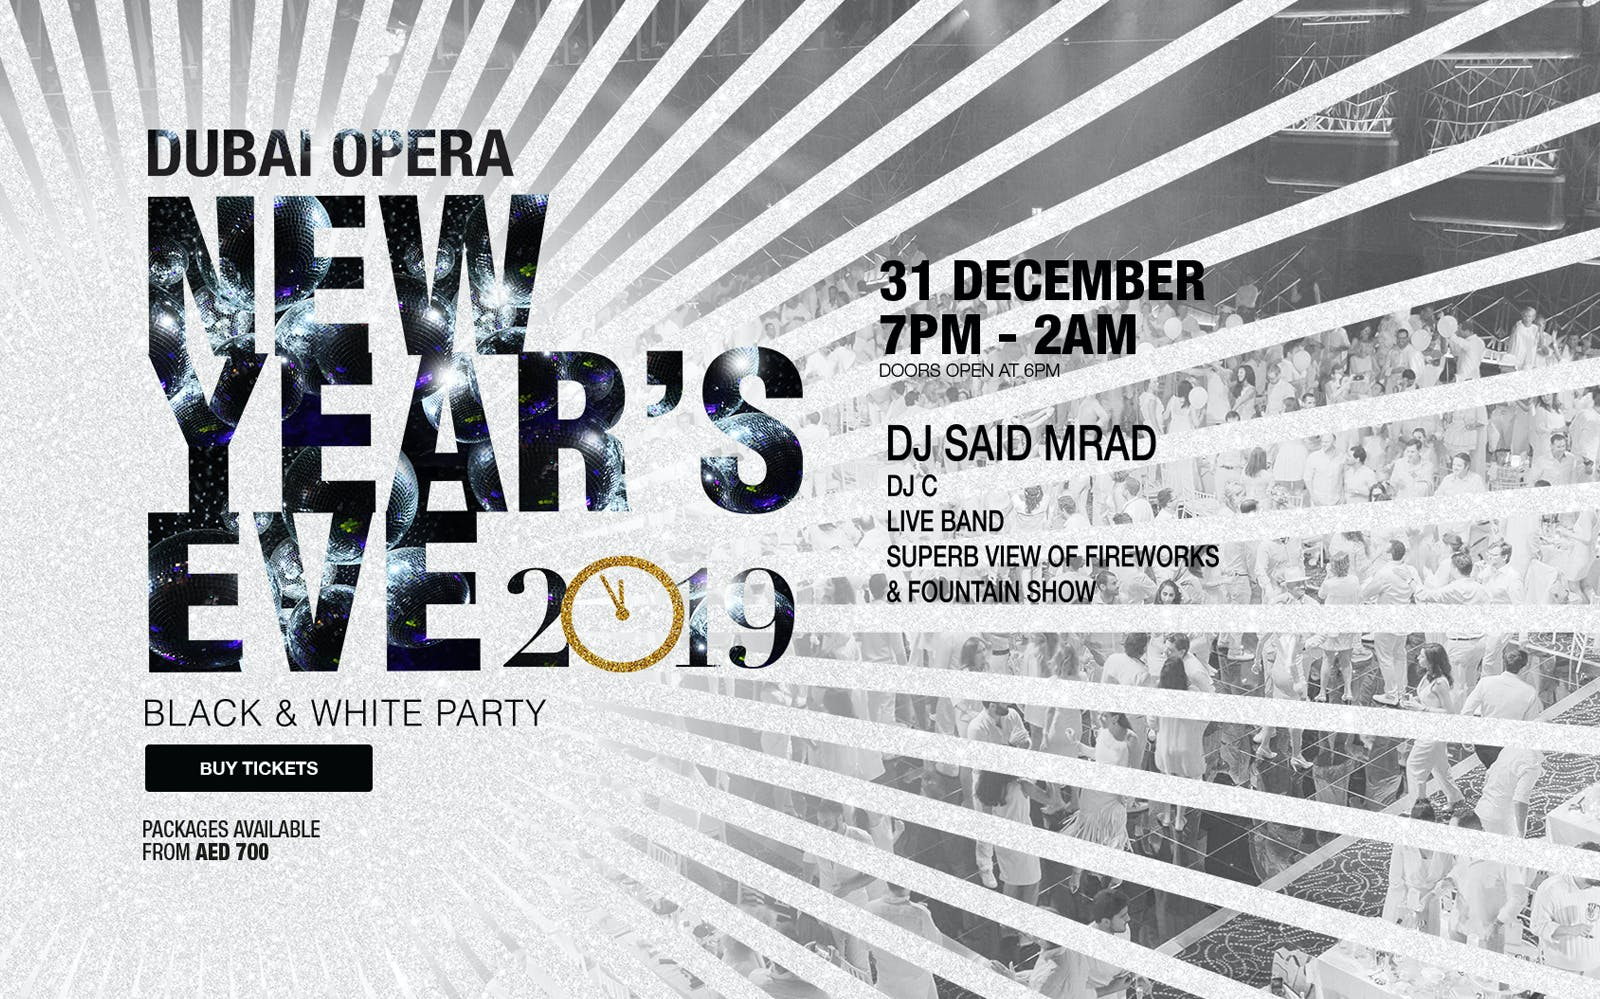 New Year's Eve Black & White Party